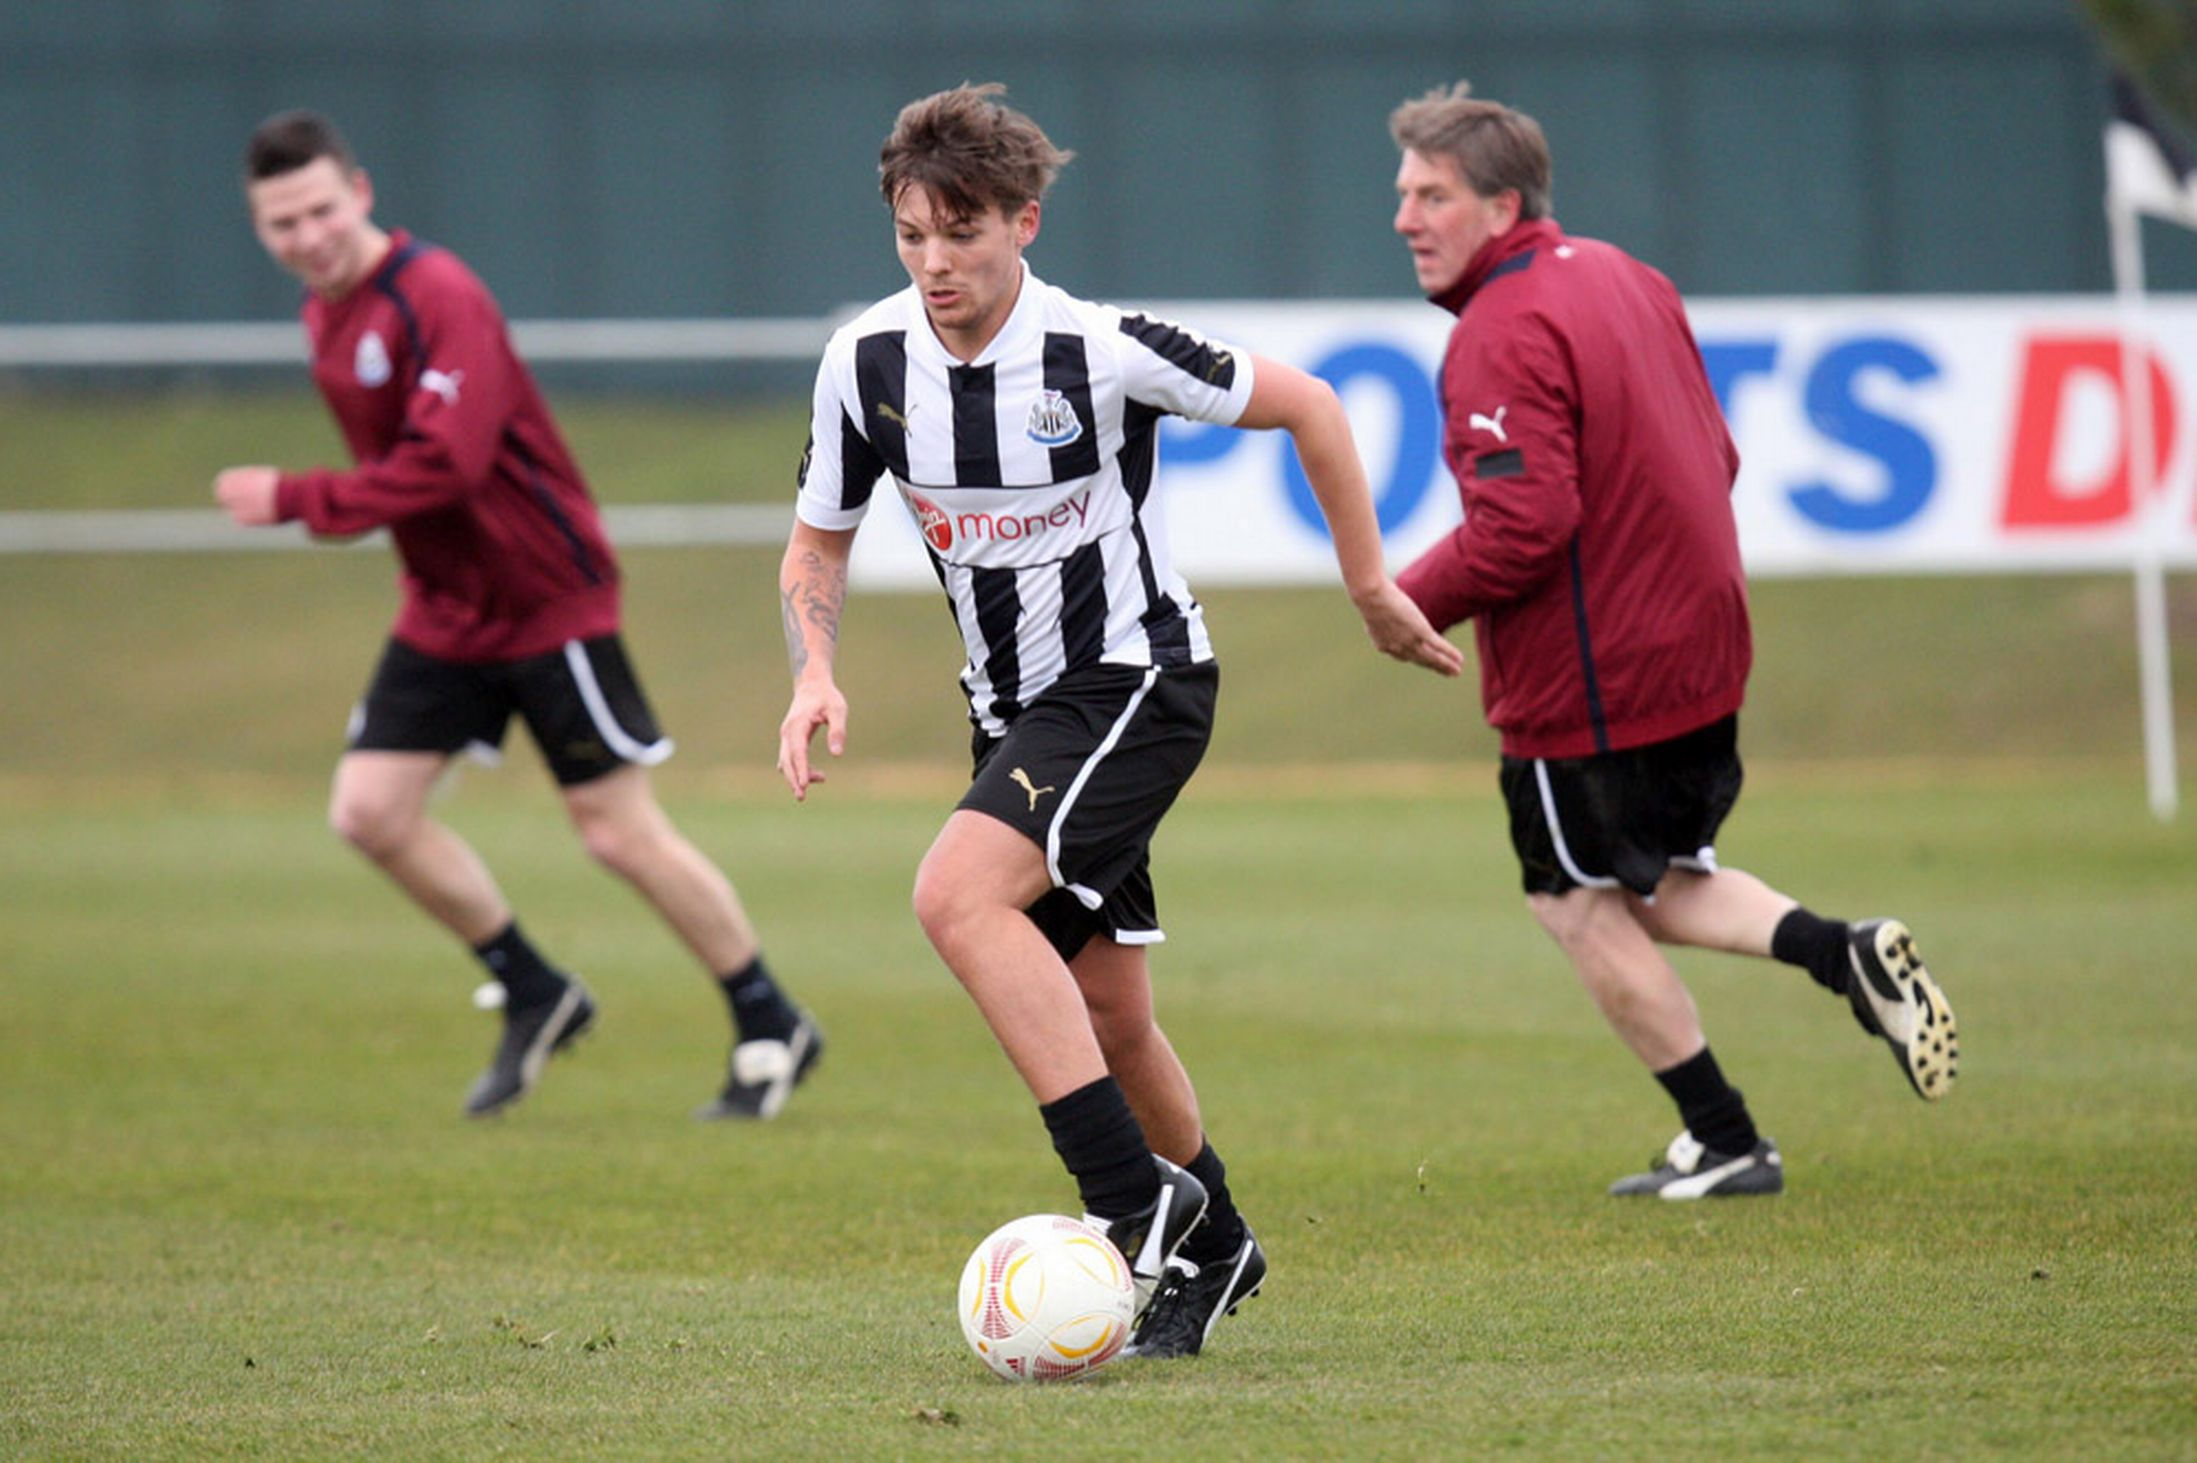 Louis playing football <3